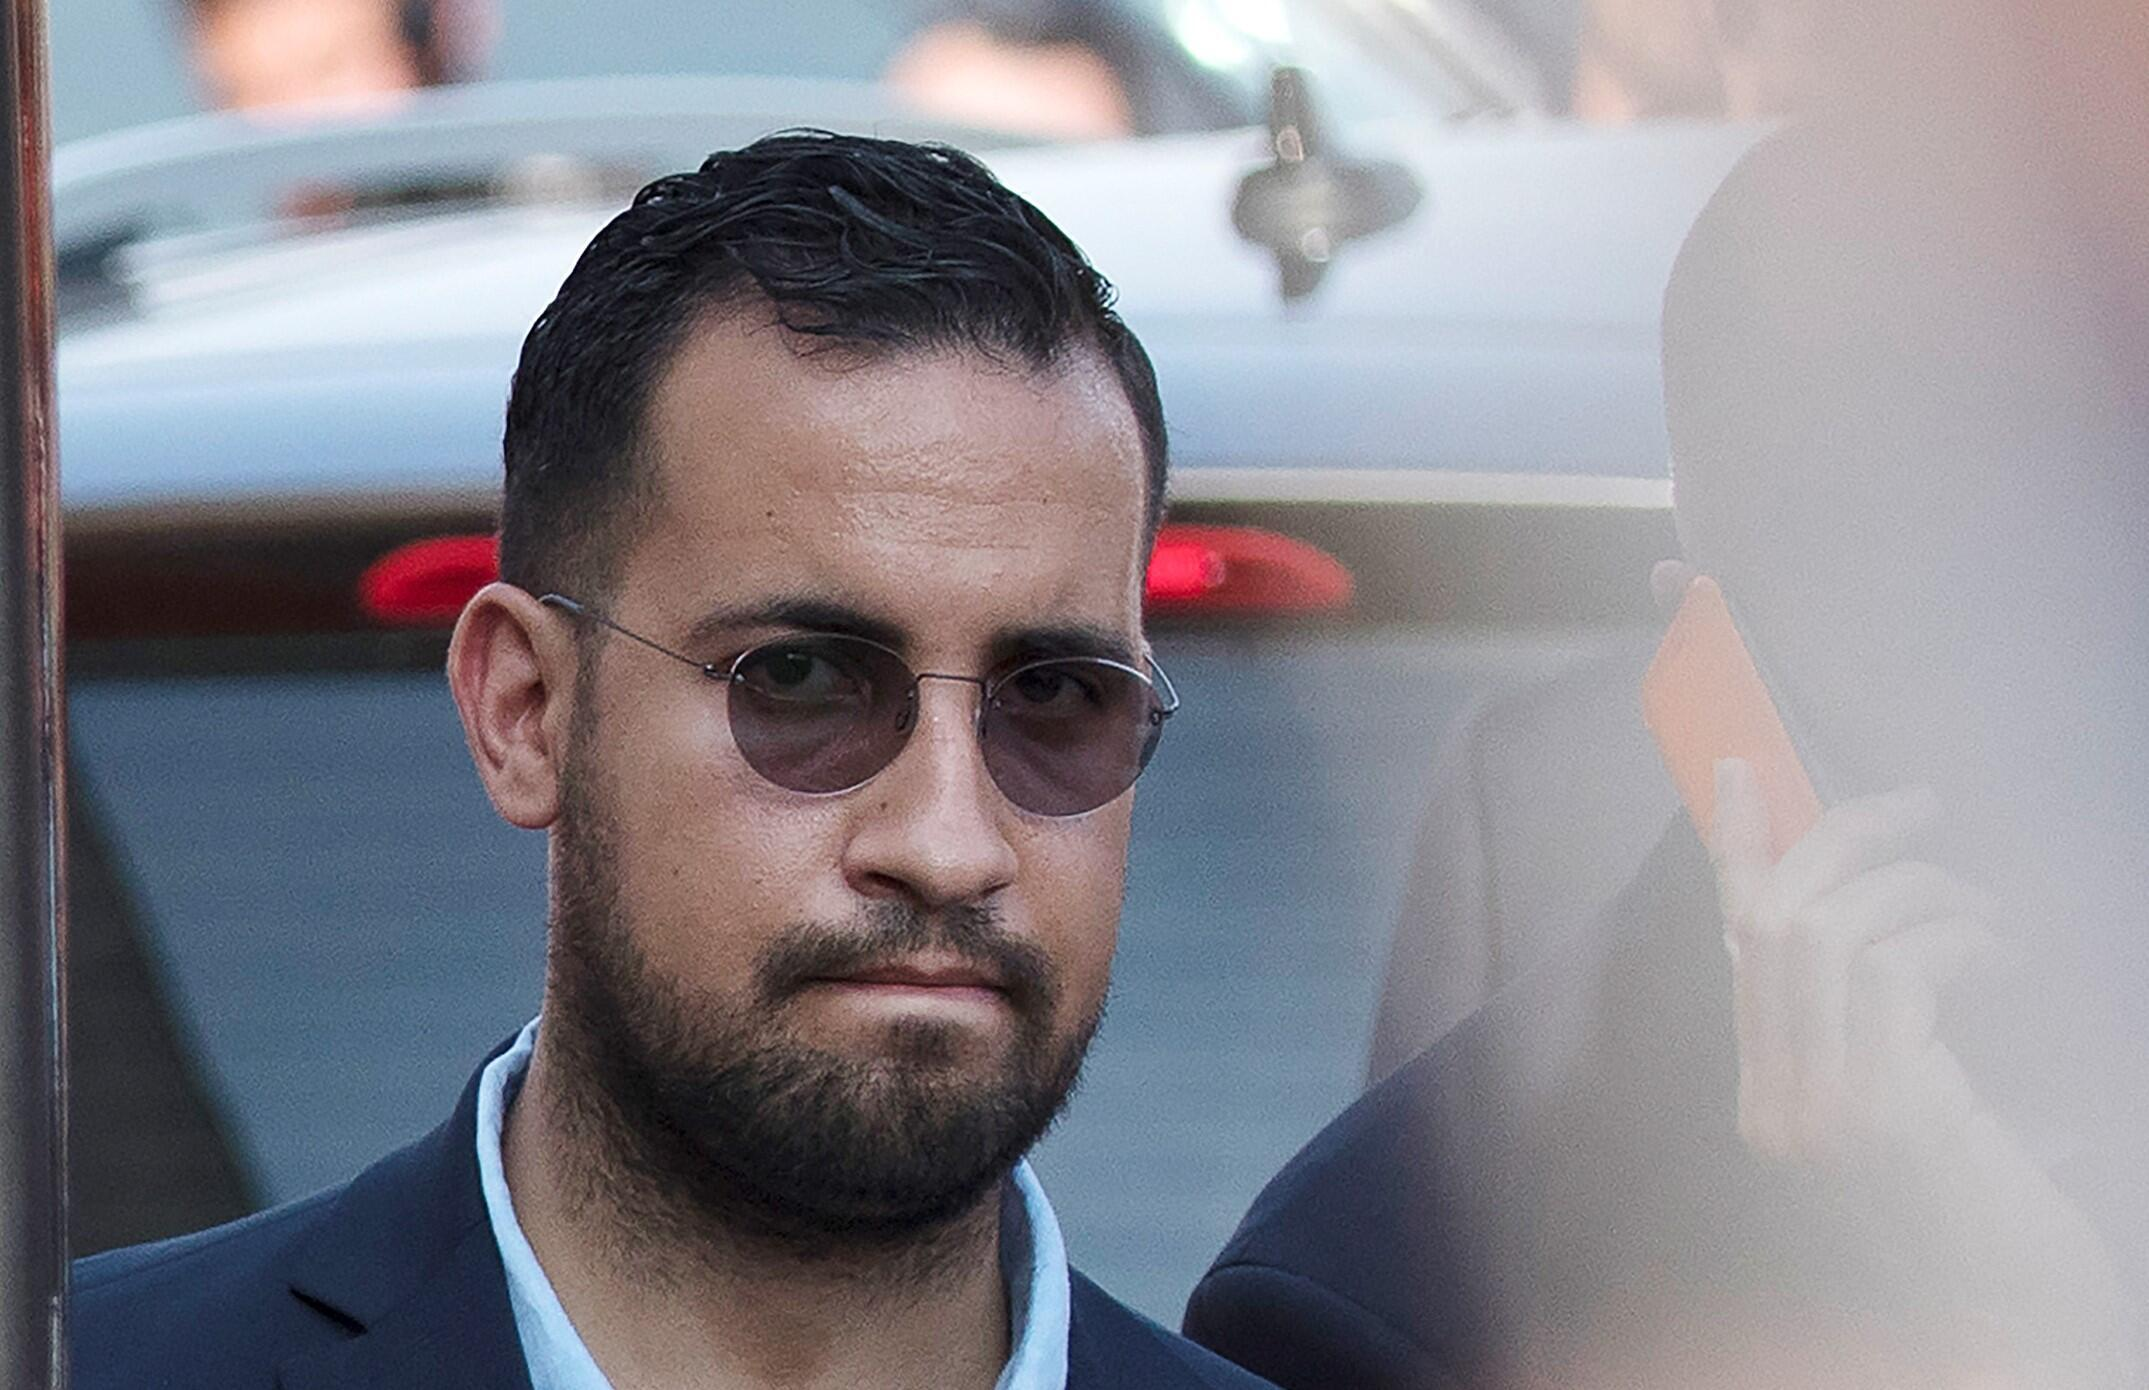 Alexandre Benalla was one of President Macron's most trusted aides until he was captured on video assaulting a couple during a protest in 2018.